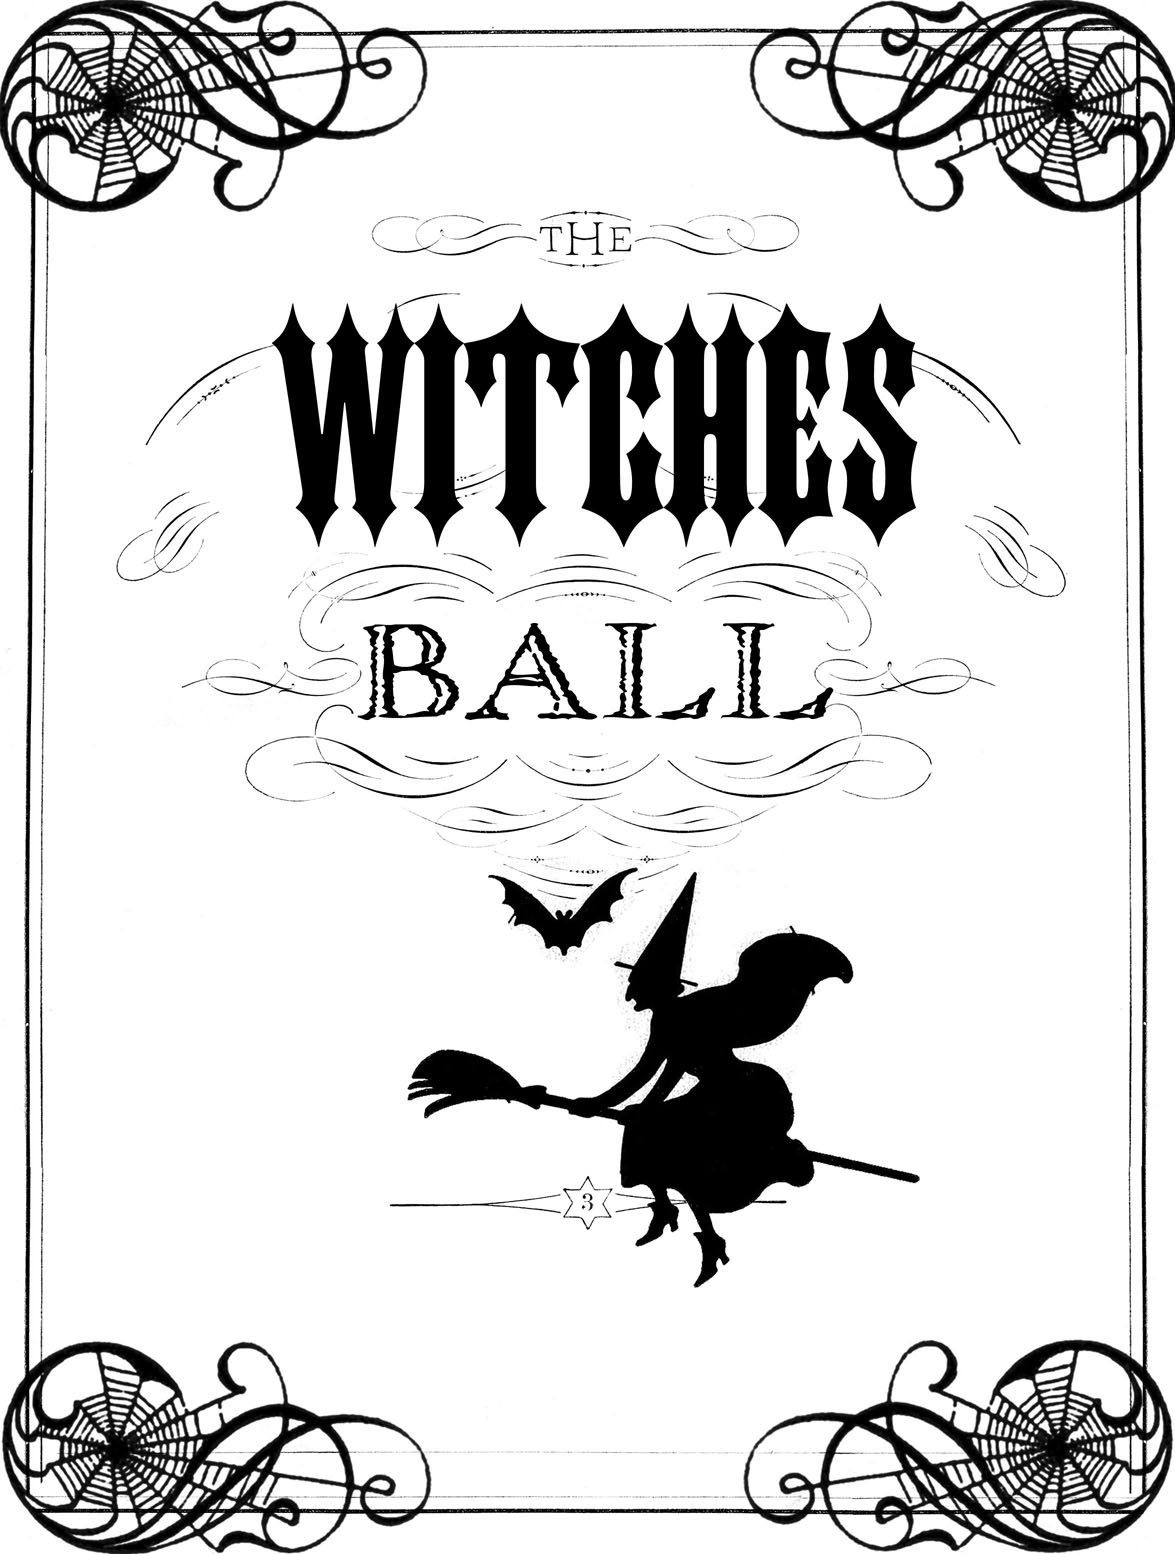 Vintage Halloween Printable - The Witches Ball - The Graphics Fairy